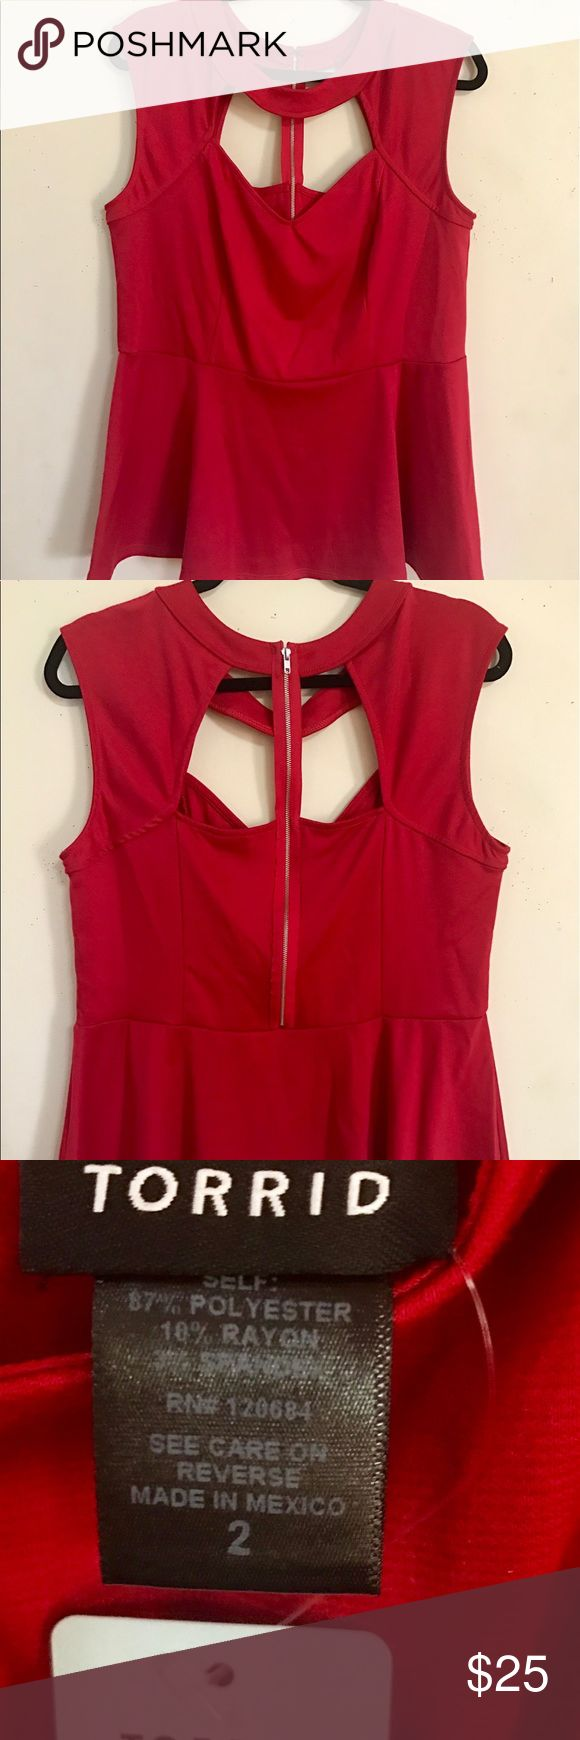 NWT Torrid Red Peplum Top (2x or 18/20) This super sexy red peplum top has such fun details! A zipper up the back, cut out chest area, etc. New with tags. Make me an offer! Or check out and bundle with my other items for a discount. torrid Tops Blouses